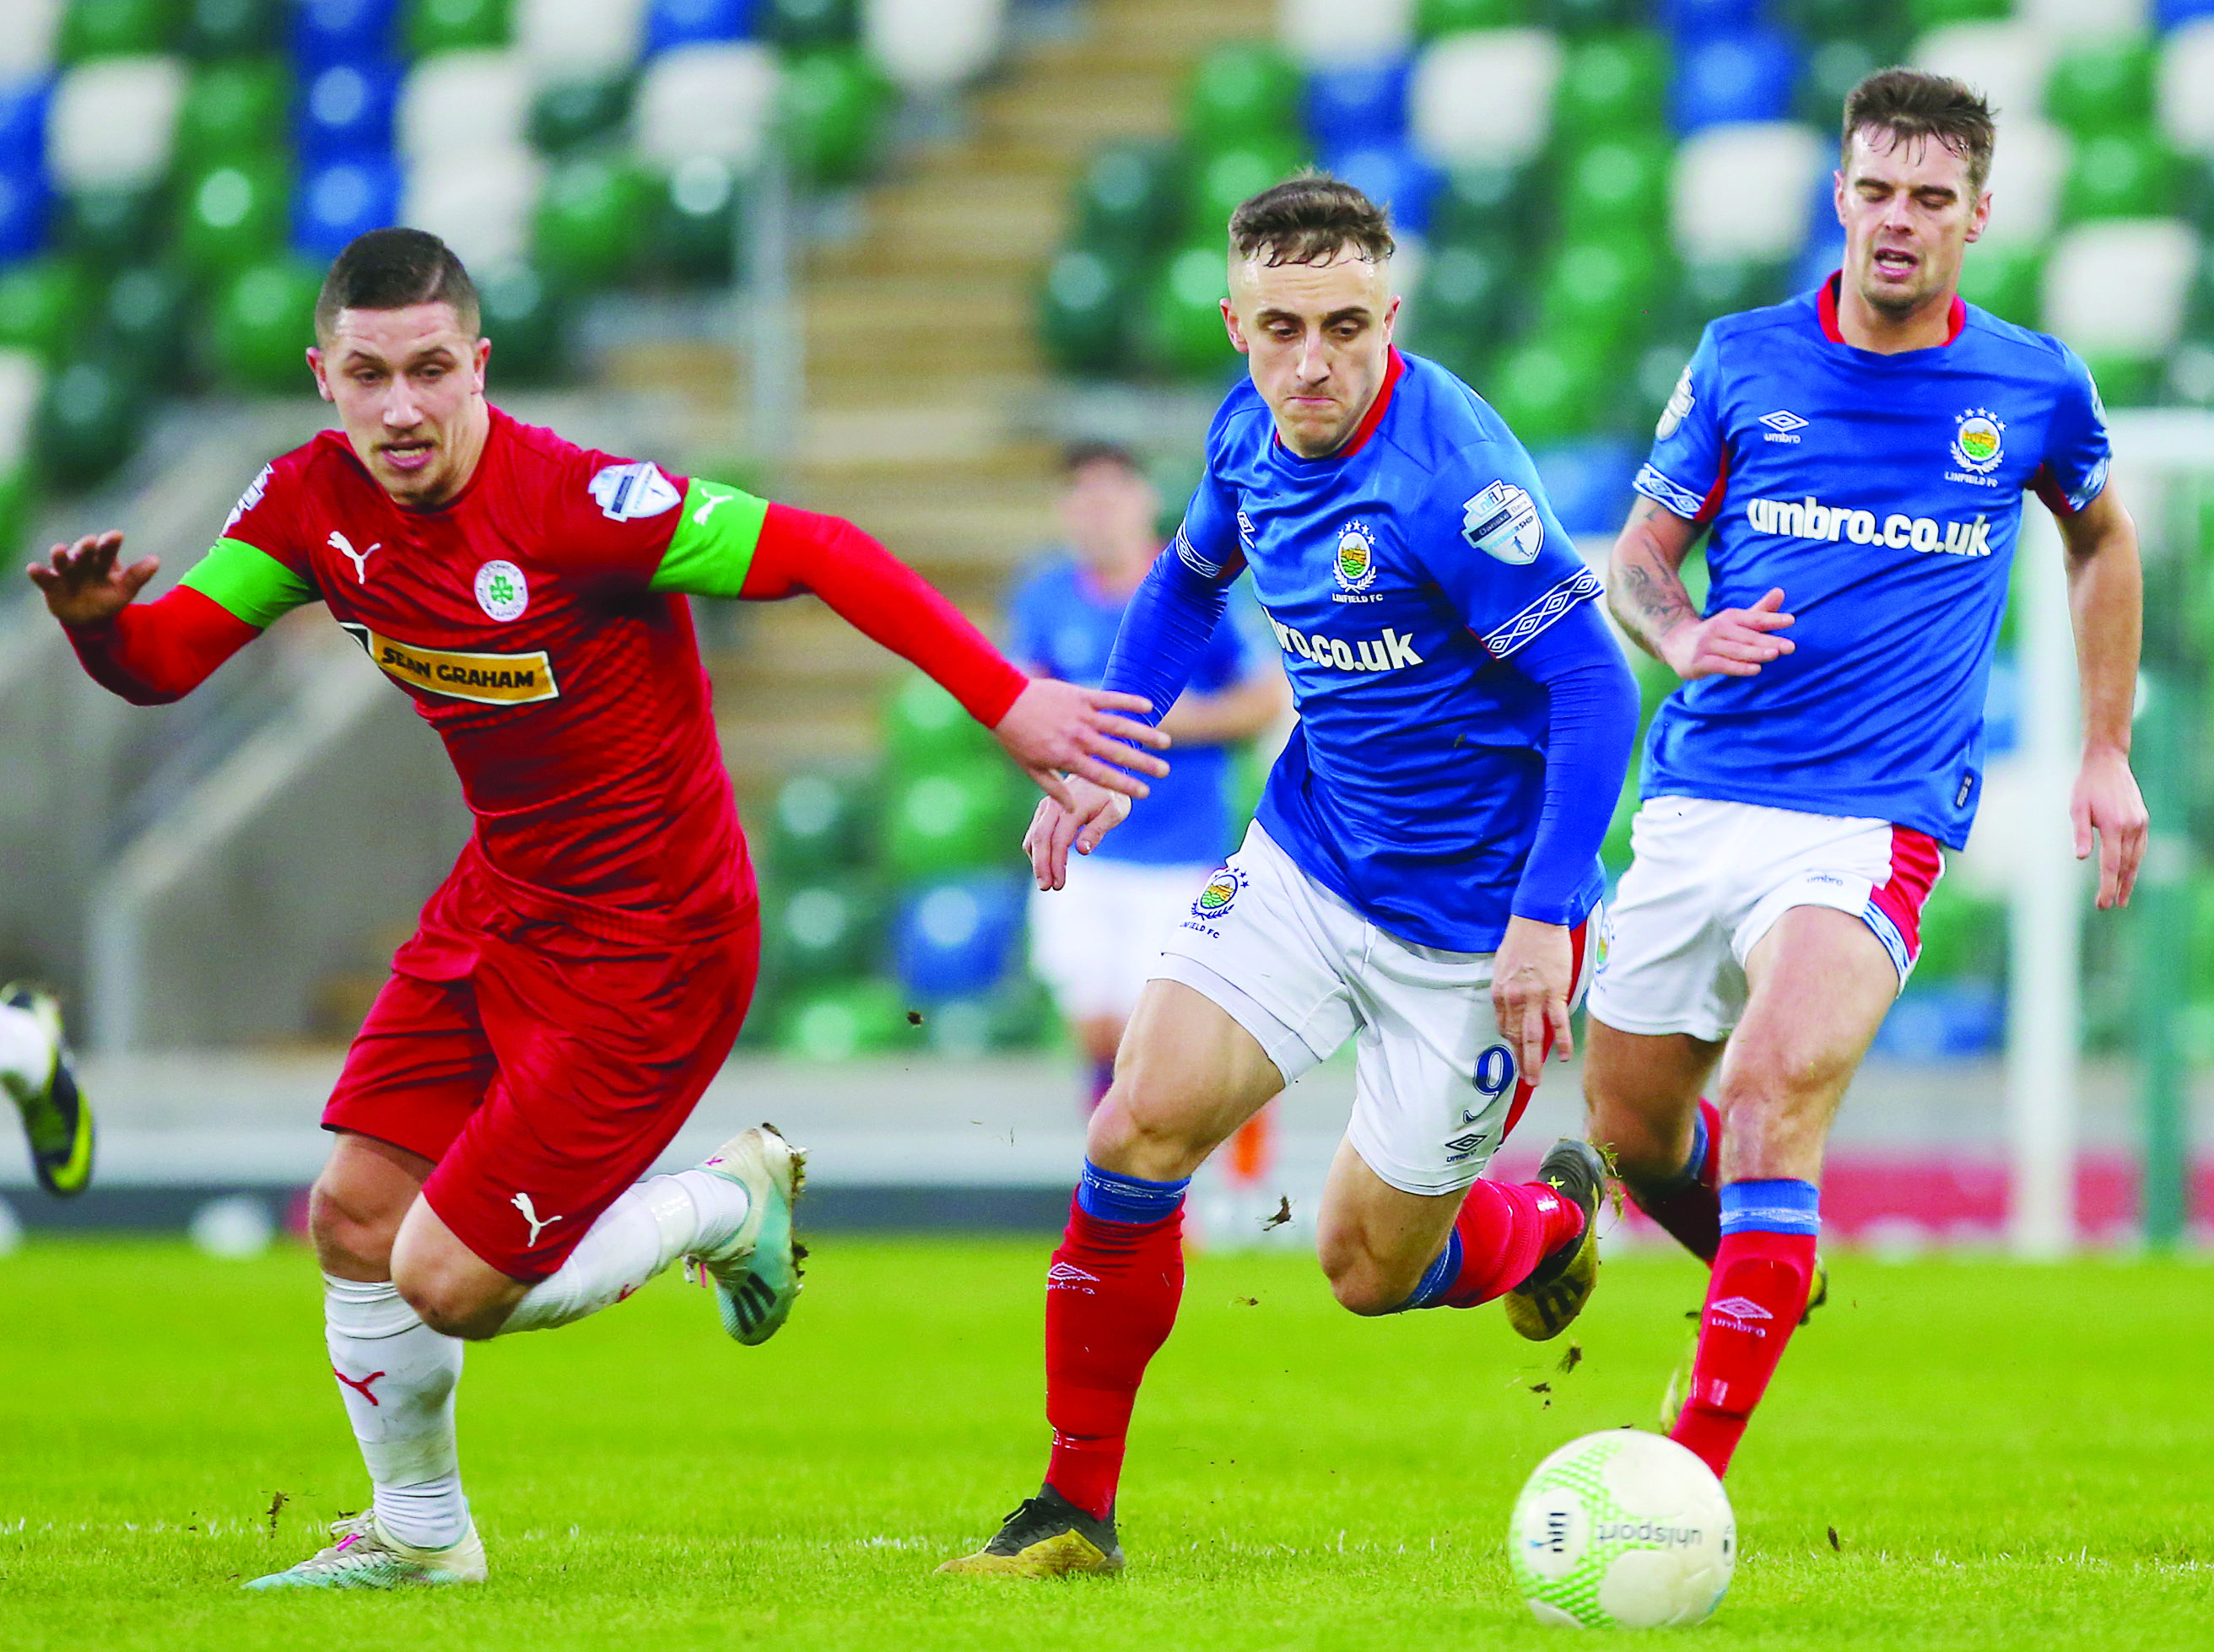 BATTLE: Linfield's Joel Cooper fights with Cliftonville's Seanan Foster for possession during last December's league game between the sides. The Belfast rivals clash once again this Saturday evening at Windsor Park